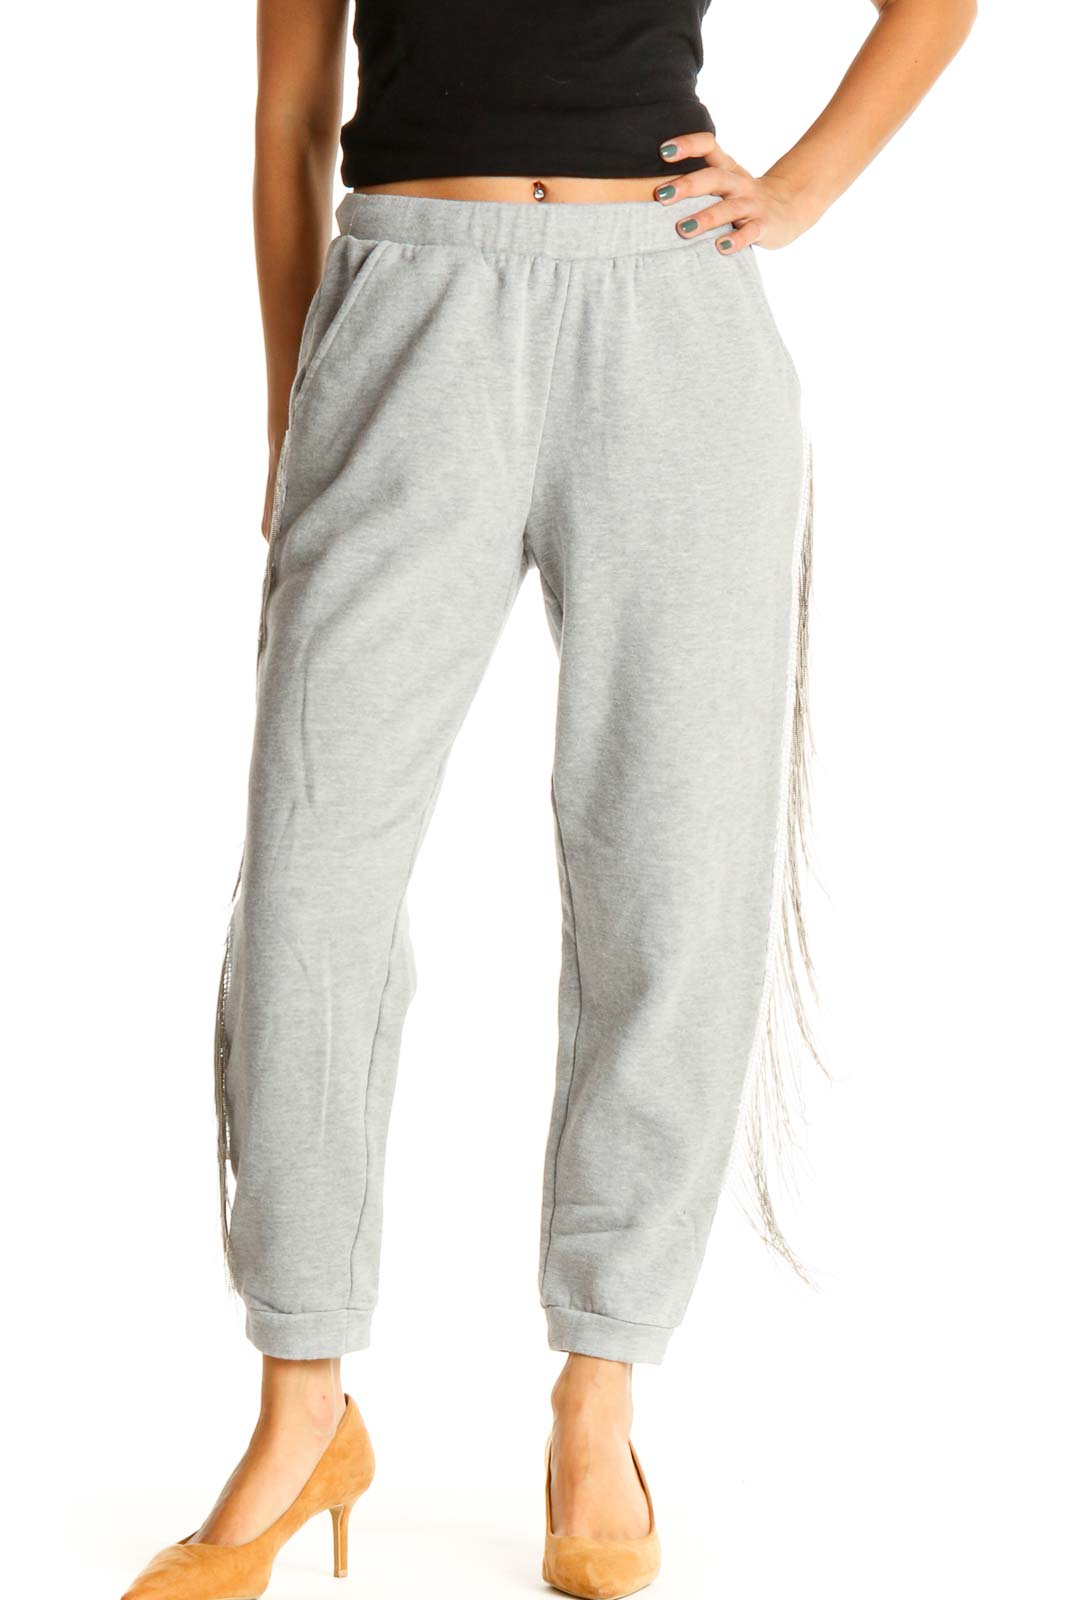 Gray Bedazzled All Day Wear Sweatpants Front